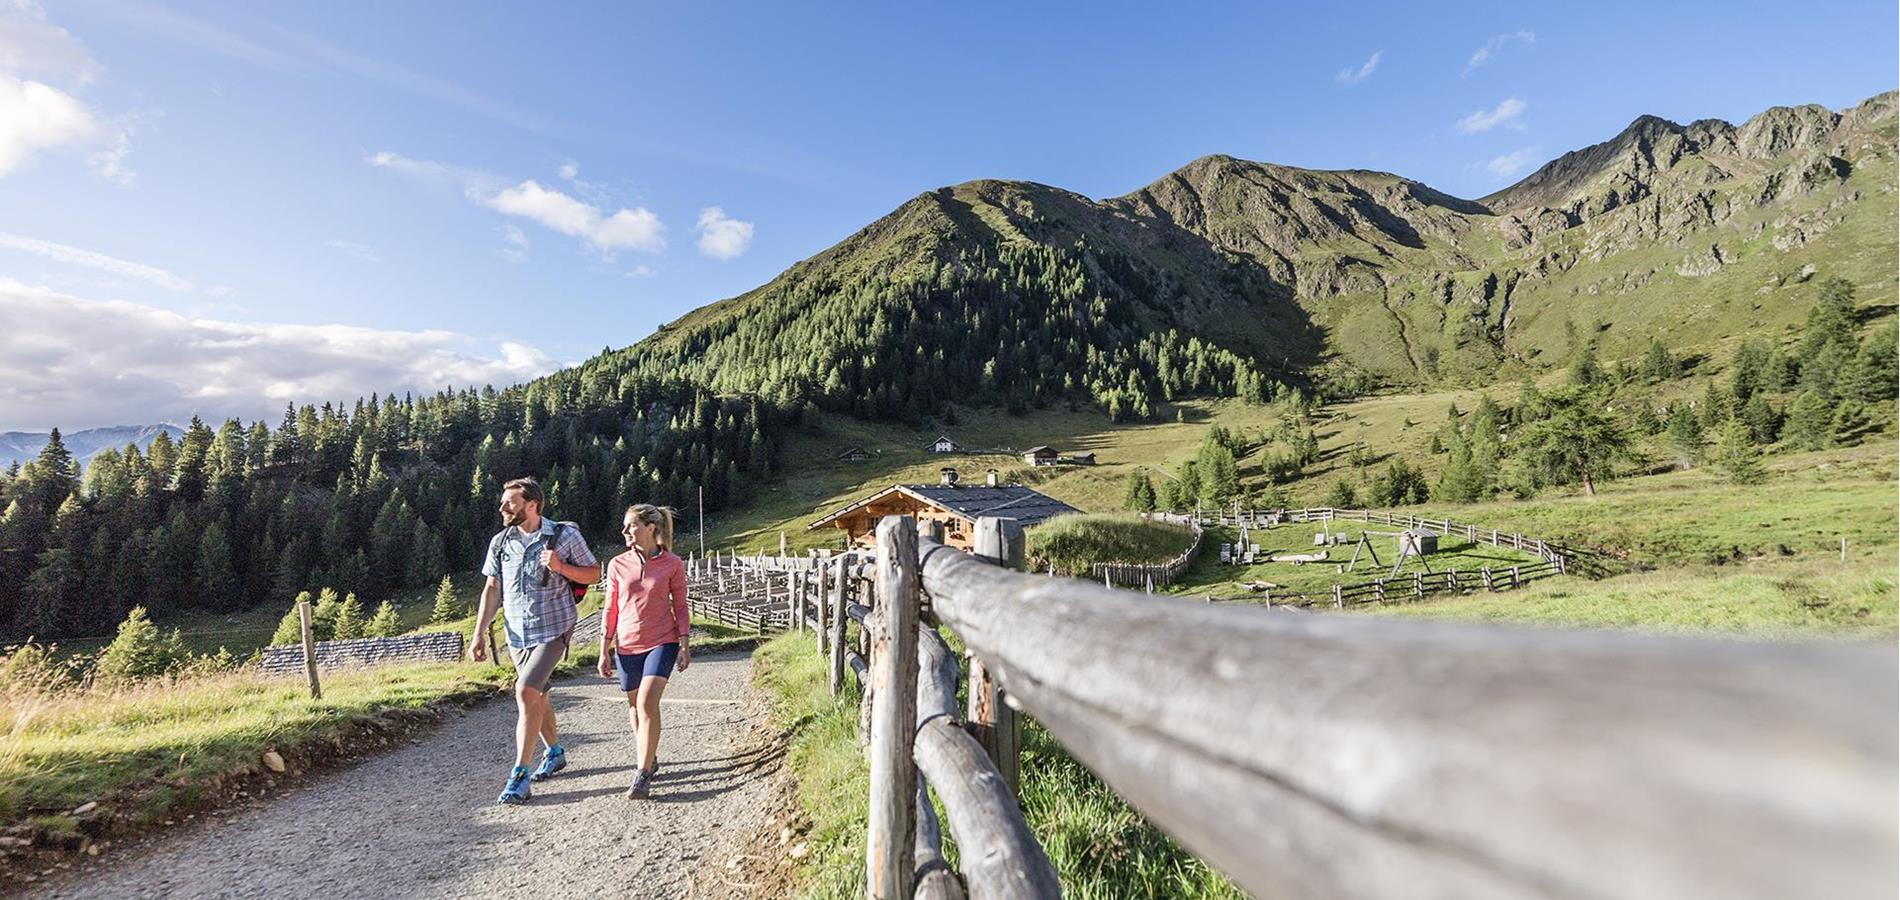 Active Holidays in Scena above Merano in South Tyrol